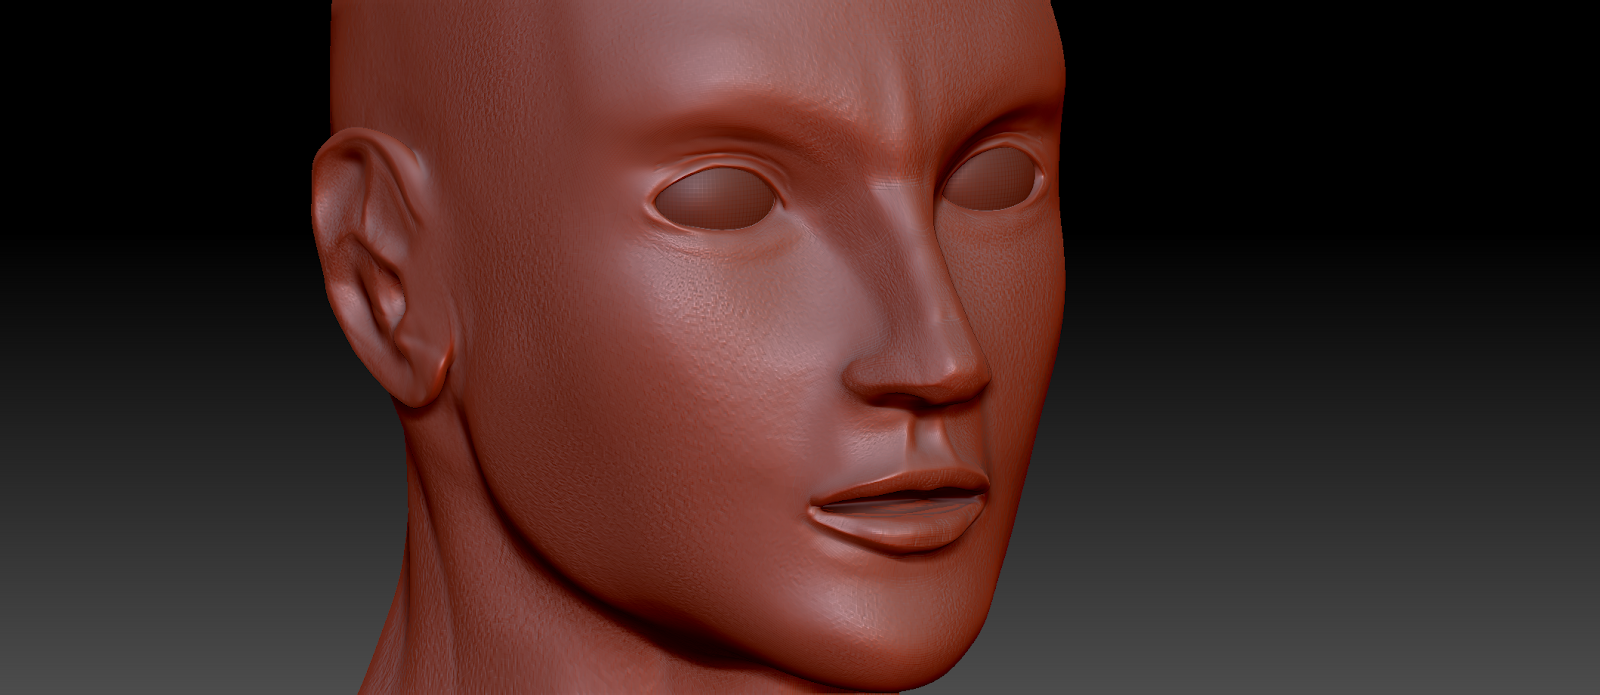 Zbrush tool used for 3D modeling at UAT